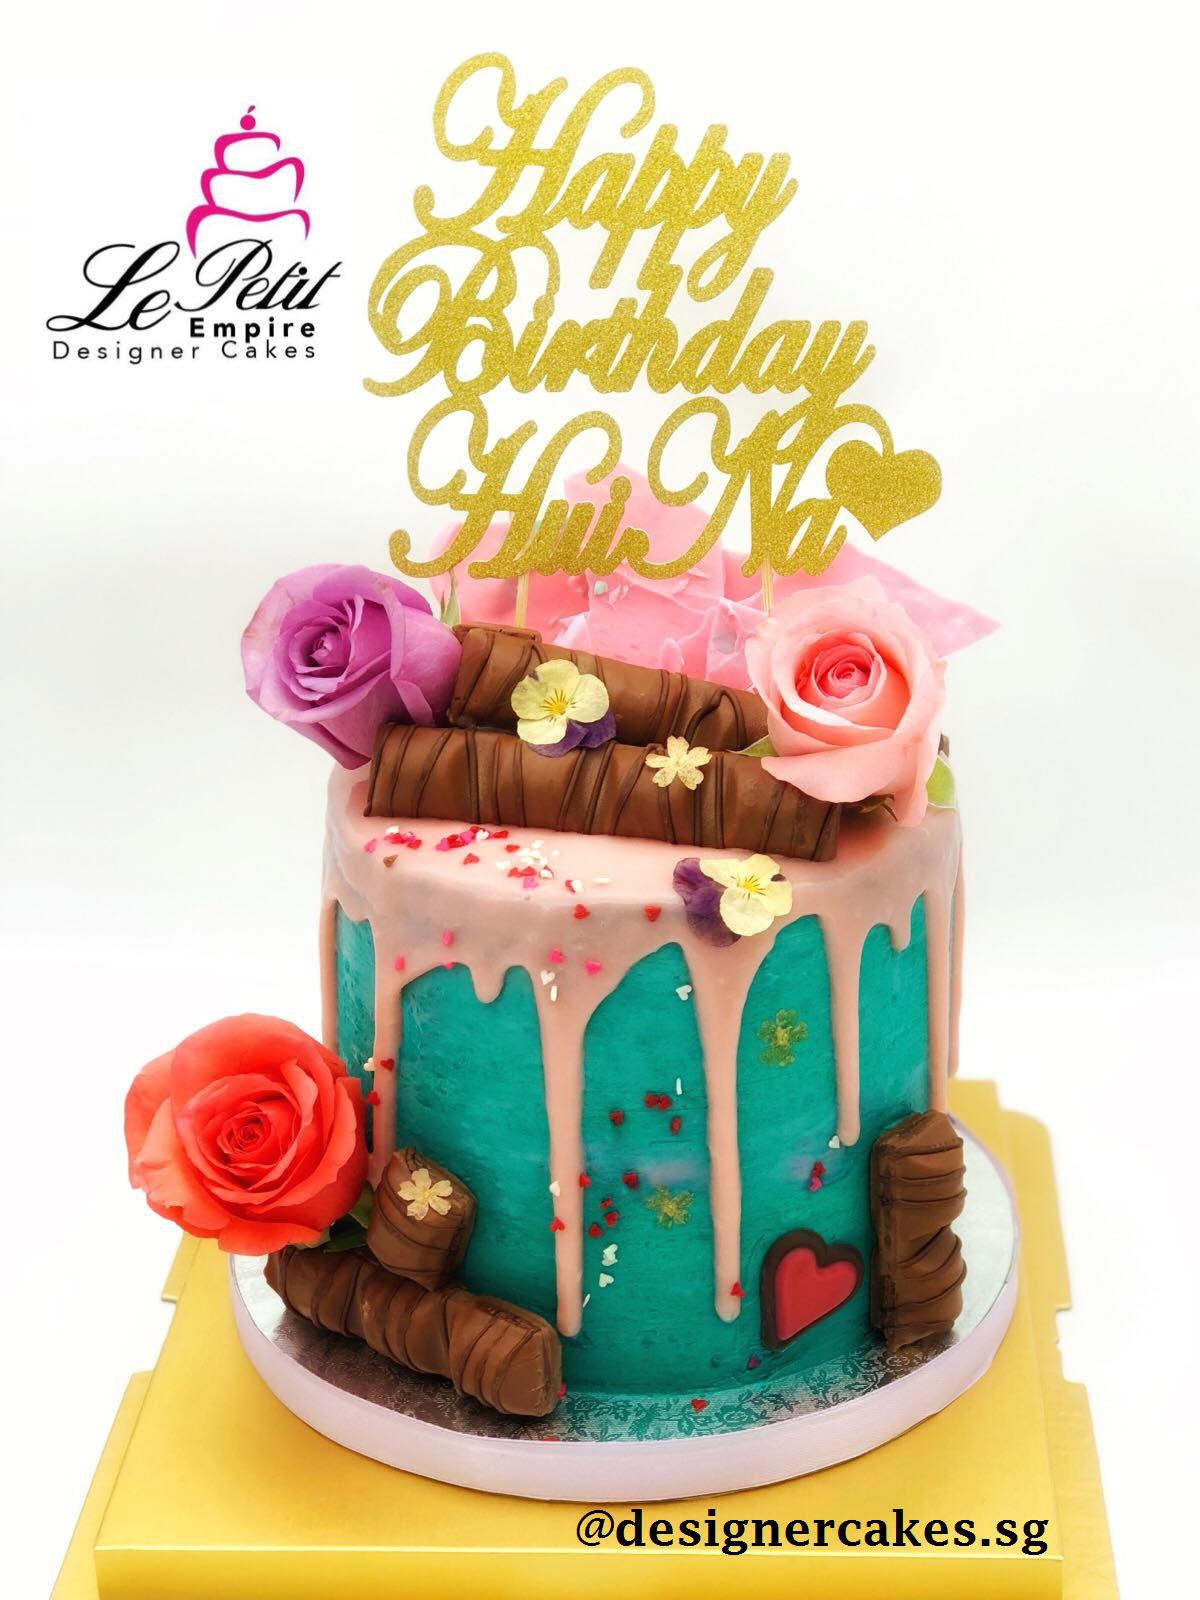 Drip Cake - Turquoise and pink drip cake with roses, chocolate, shards and customized name cake topper. Singapore Customized Cakes